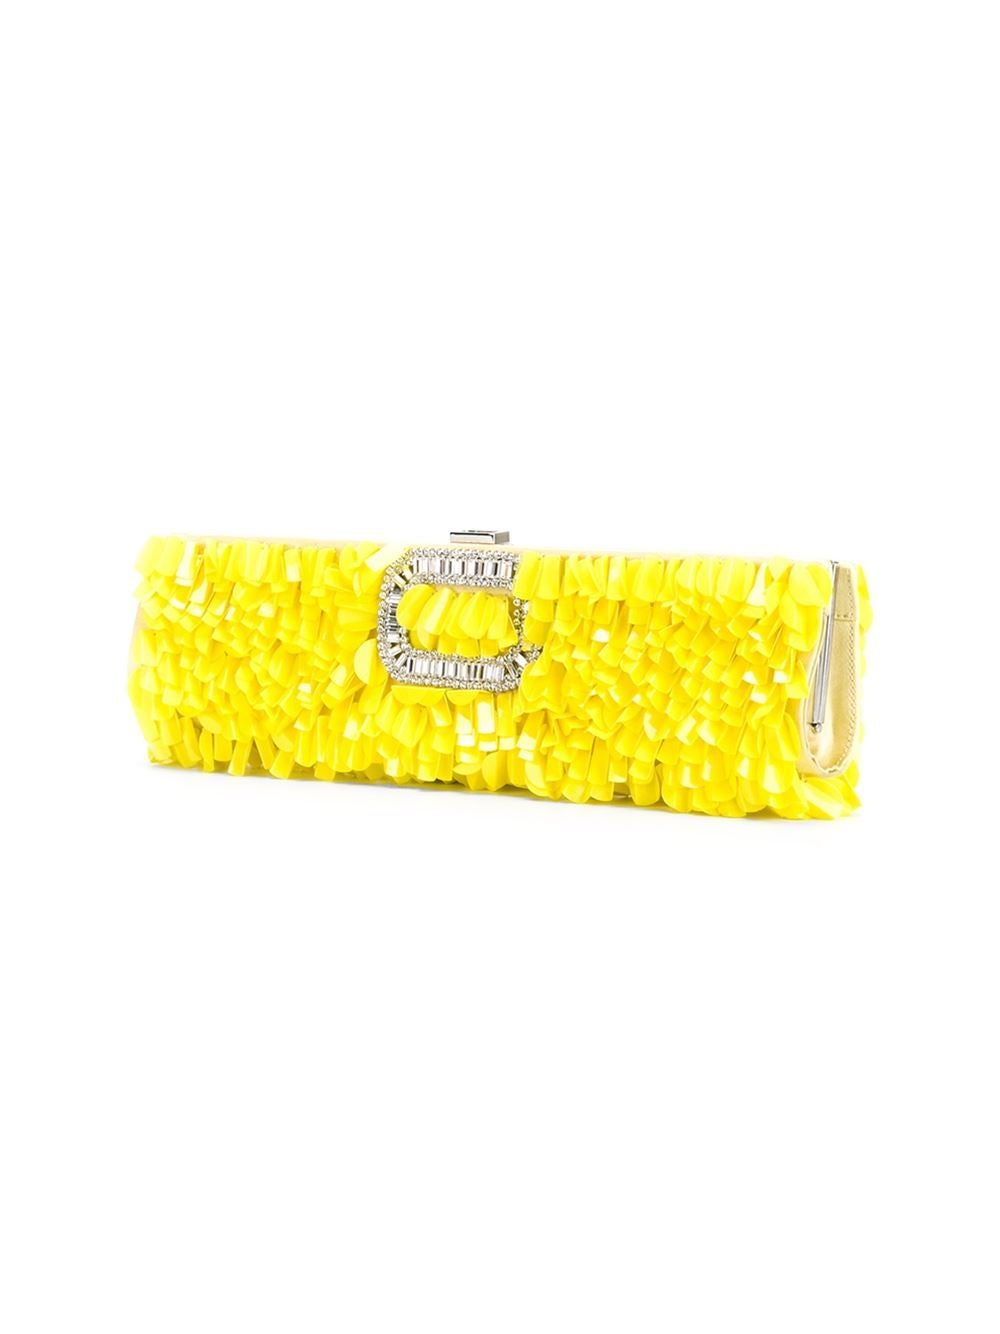 This yellow embellished clutch from Roger Vivier features a top clasp fastening, an internal logo stamp, wavy beads and crystal embellishments.  Colour: Yellow  Material: Plastic, Metal  Measurements: height: 7 centimetres, width: 33